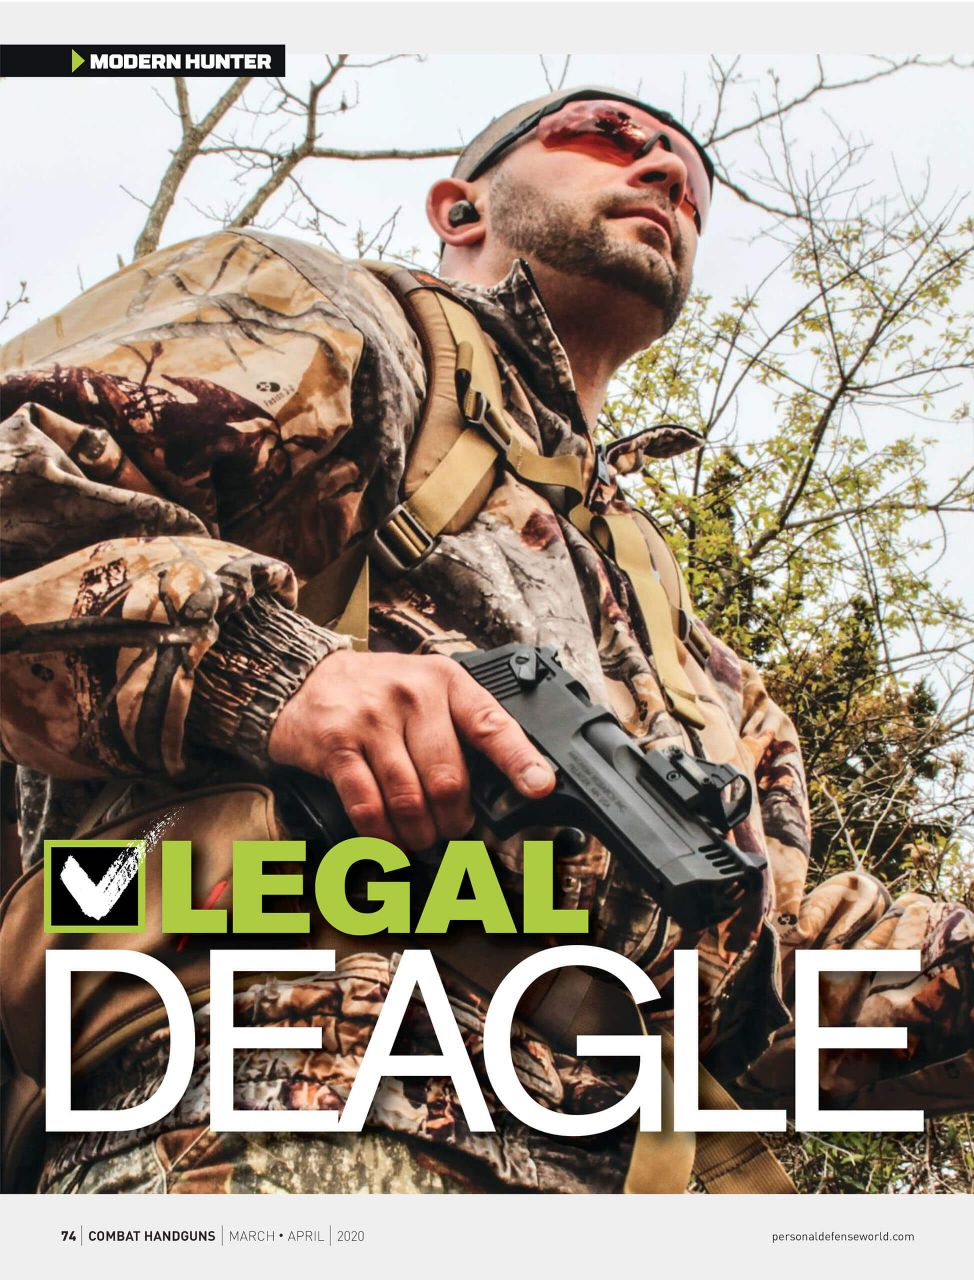 Combat Handguns | LEGAL DEAGLE